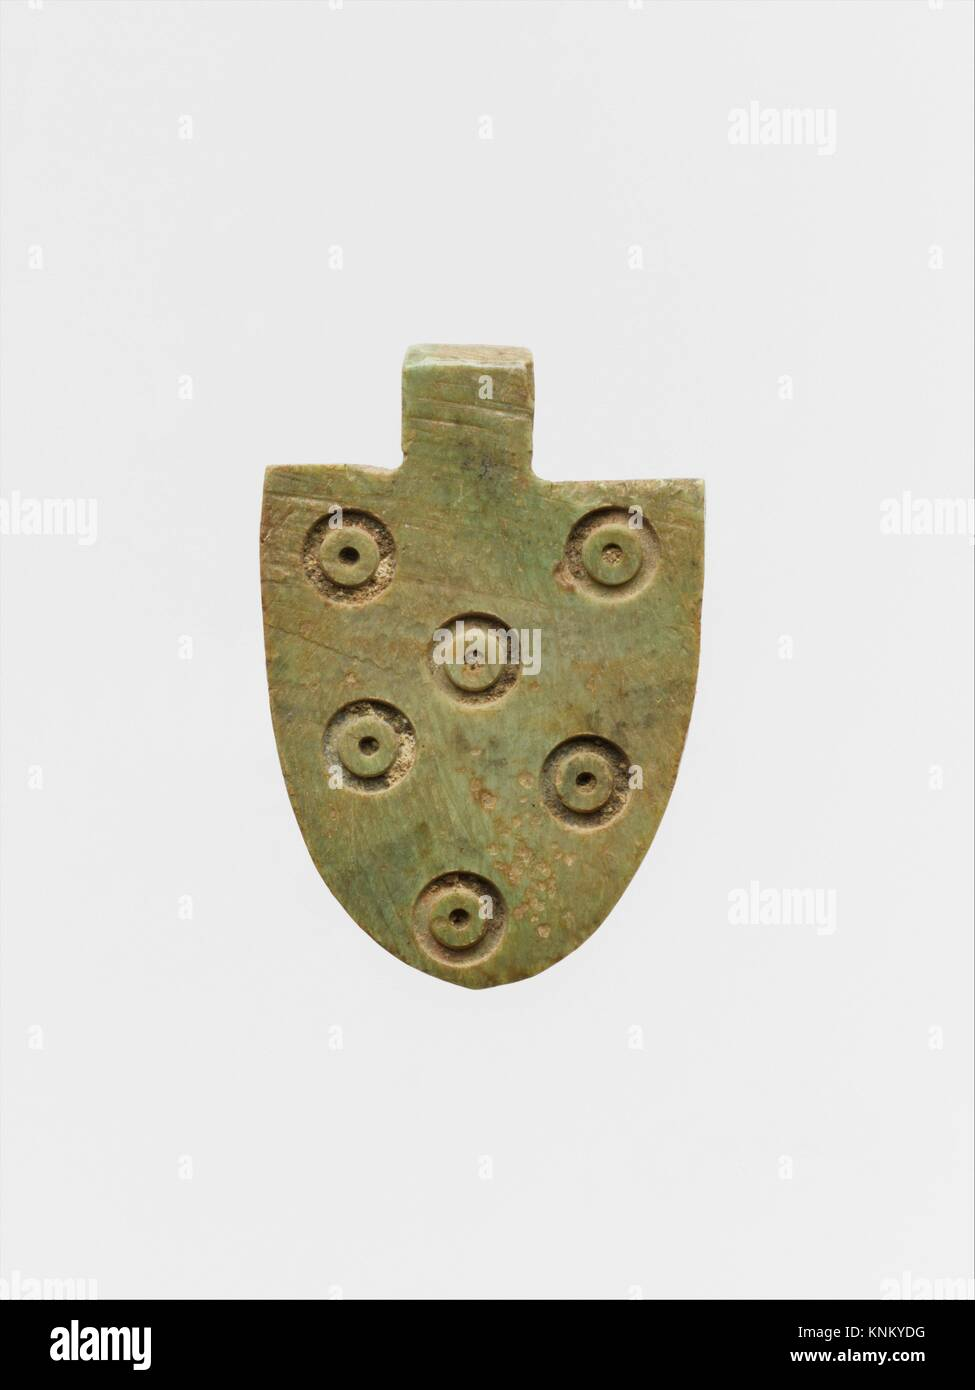 Bone attachment. Period: Late Antique or Byzantine; Date: 4th century A.D. or later; Culture: Roman or Byzantine; - Stock Image